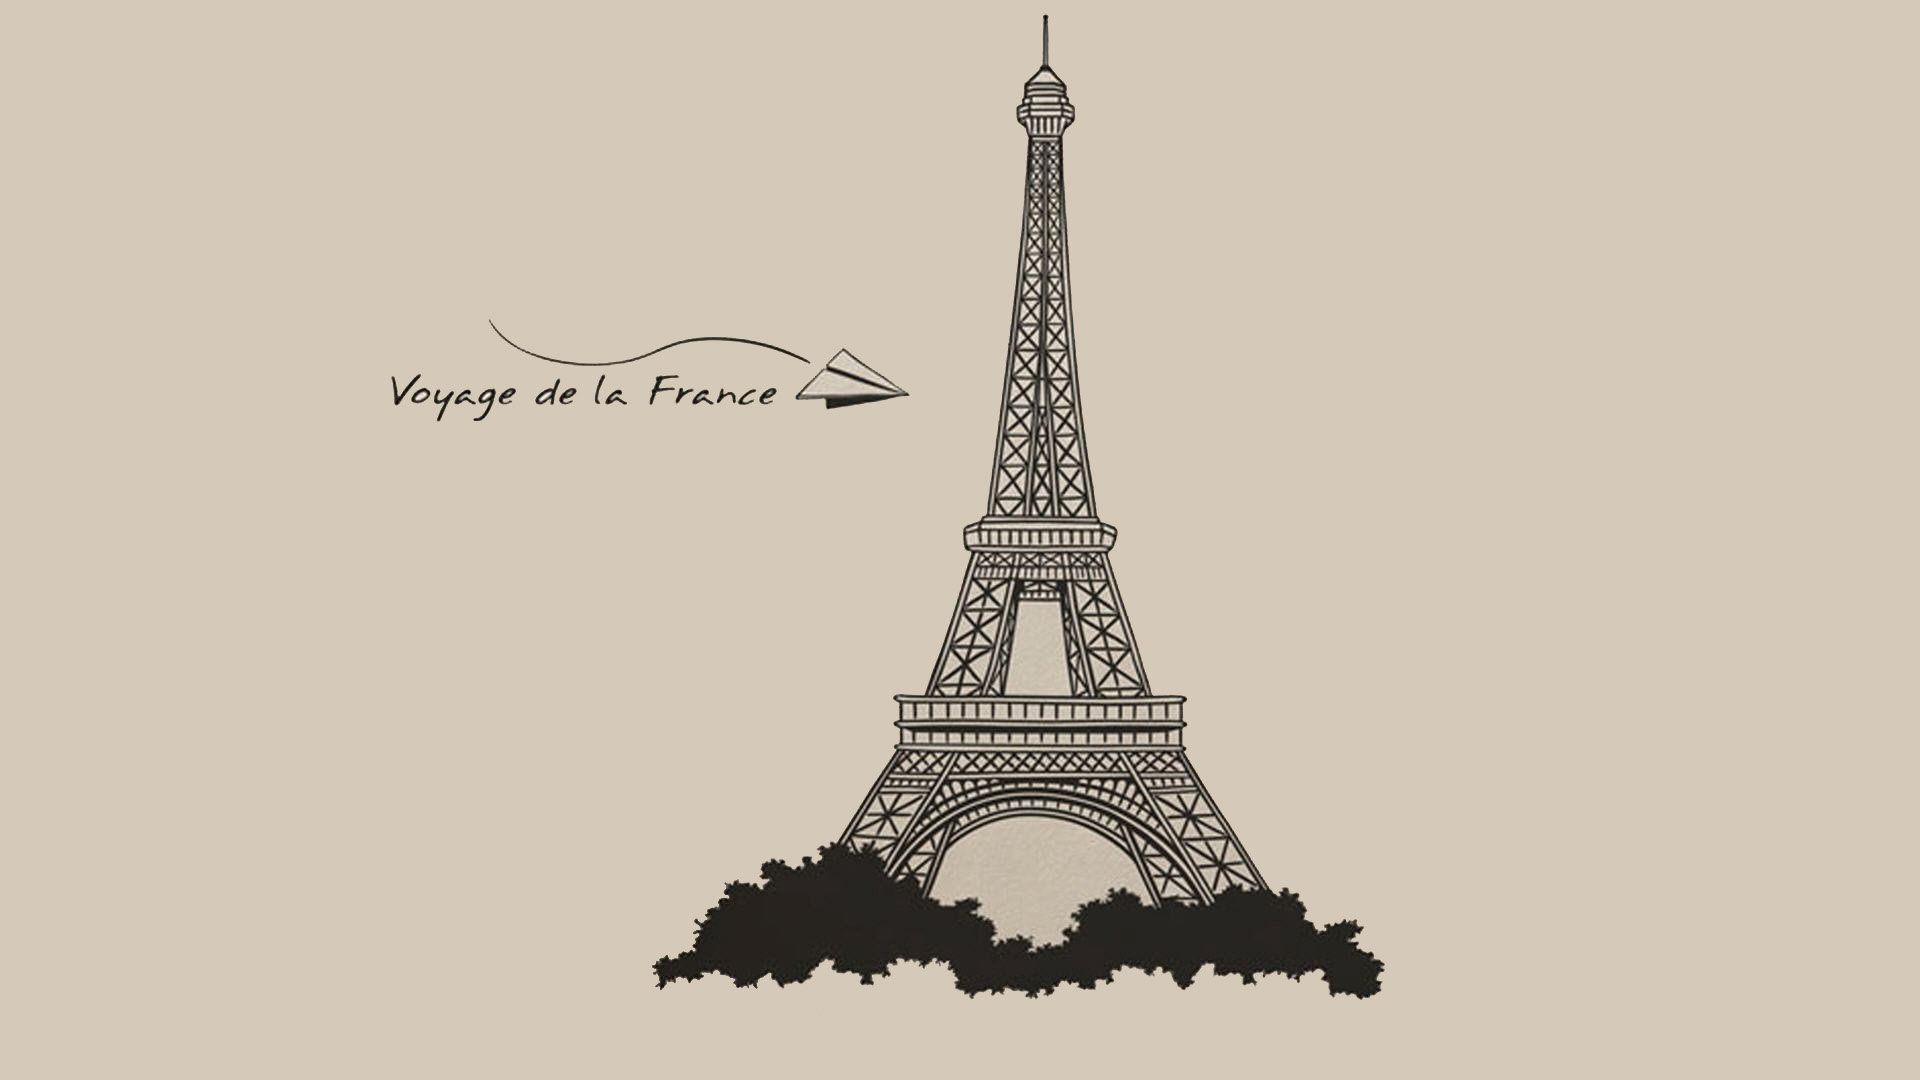 1920x1080 Paris Eiffel Tower Drawing Eiffel Tower Drawing Wallpapers